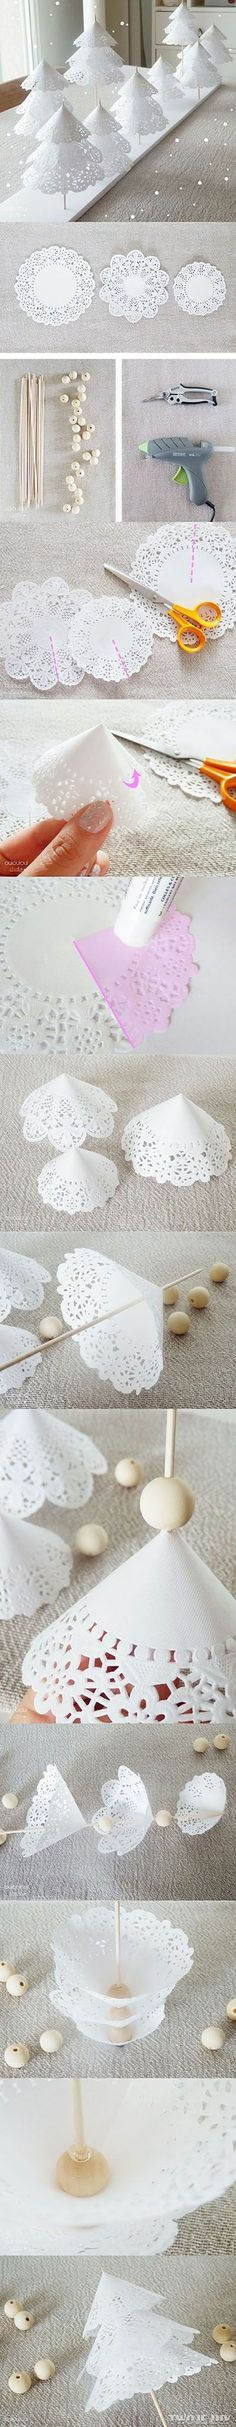 Doily Christmas Trees diy crafts christmas easy crafts diy ideas christmas crafts christmas decor christmas trees christmas diy christmas crafts for kids chistmas tutorials Noel Christmas, All Things Christmas, Winter Christmas, Handmade Christmas, Christmas Ornaments, Christmas Paper, Christmas Scrapbook, Frozen Christmas, Office Christmas